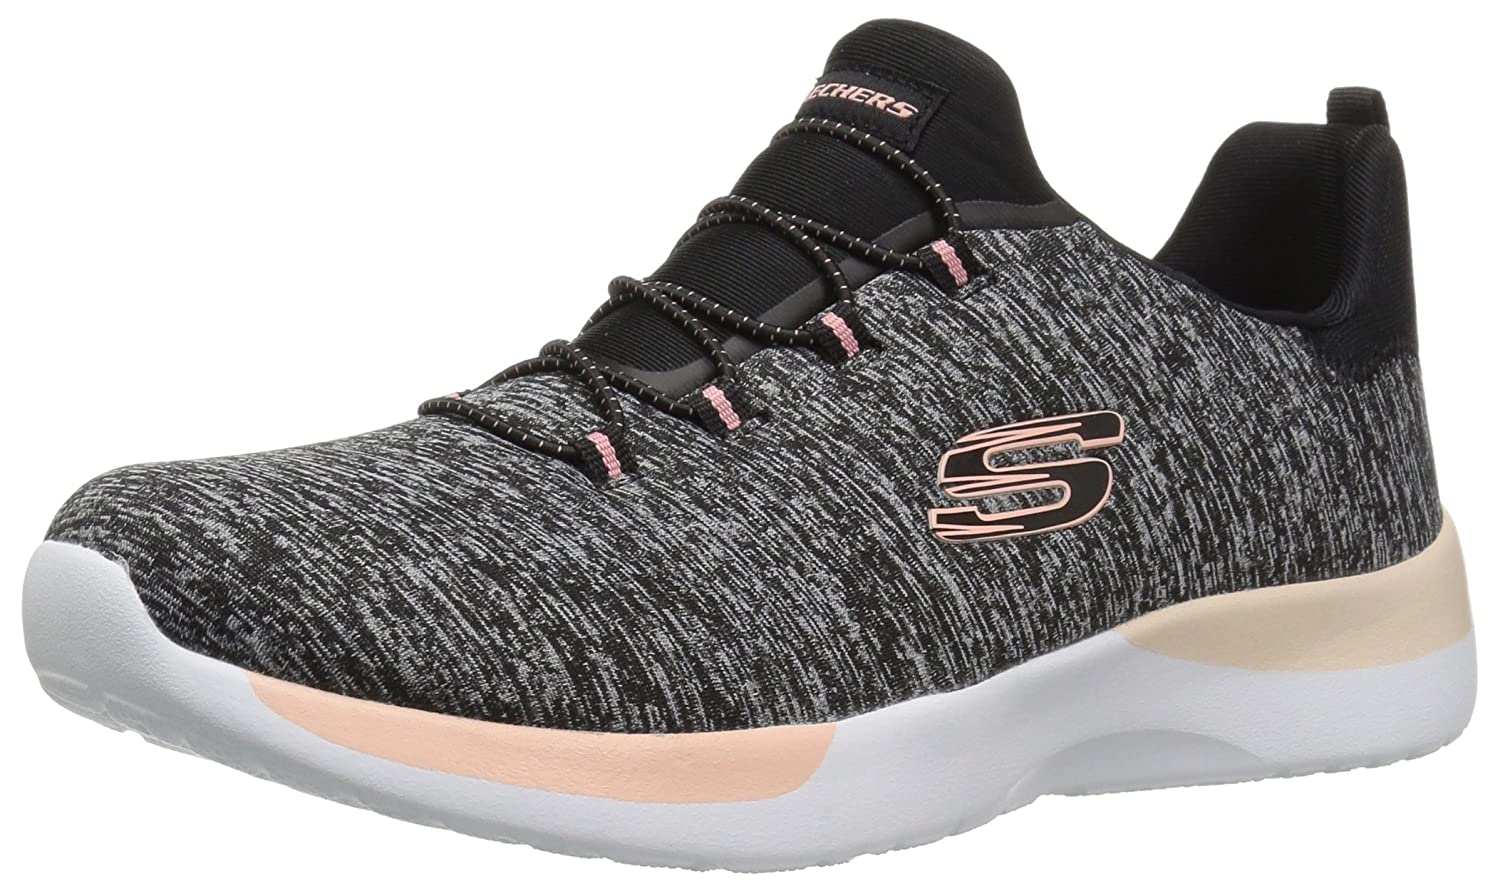 Skechers 12991/GYLP Dynamight-Break-Through Damen Sneaker Slipper Grau/Rosa  40 EU|Schwarz (Black/Coral)